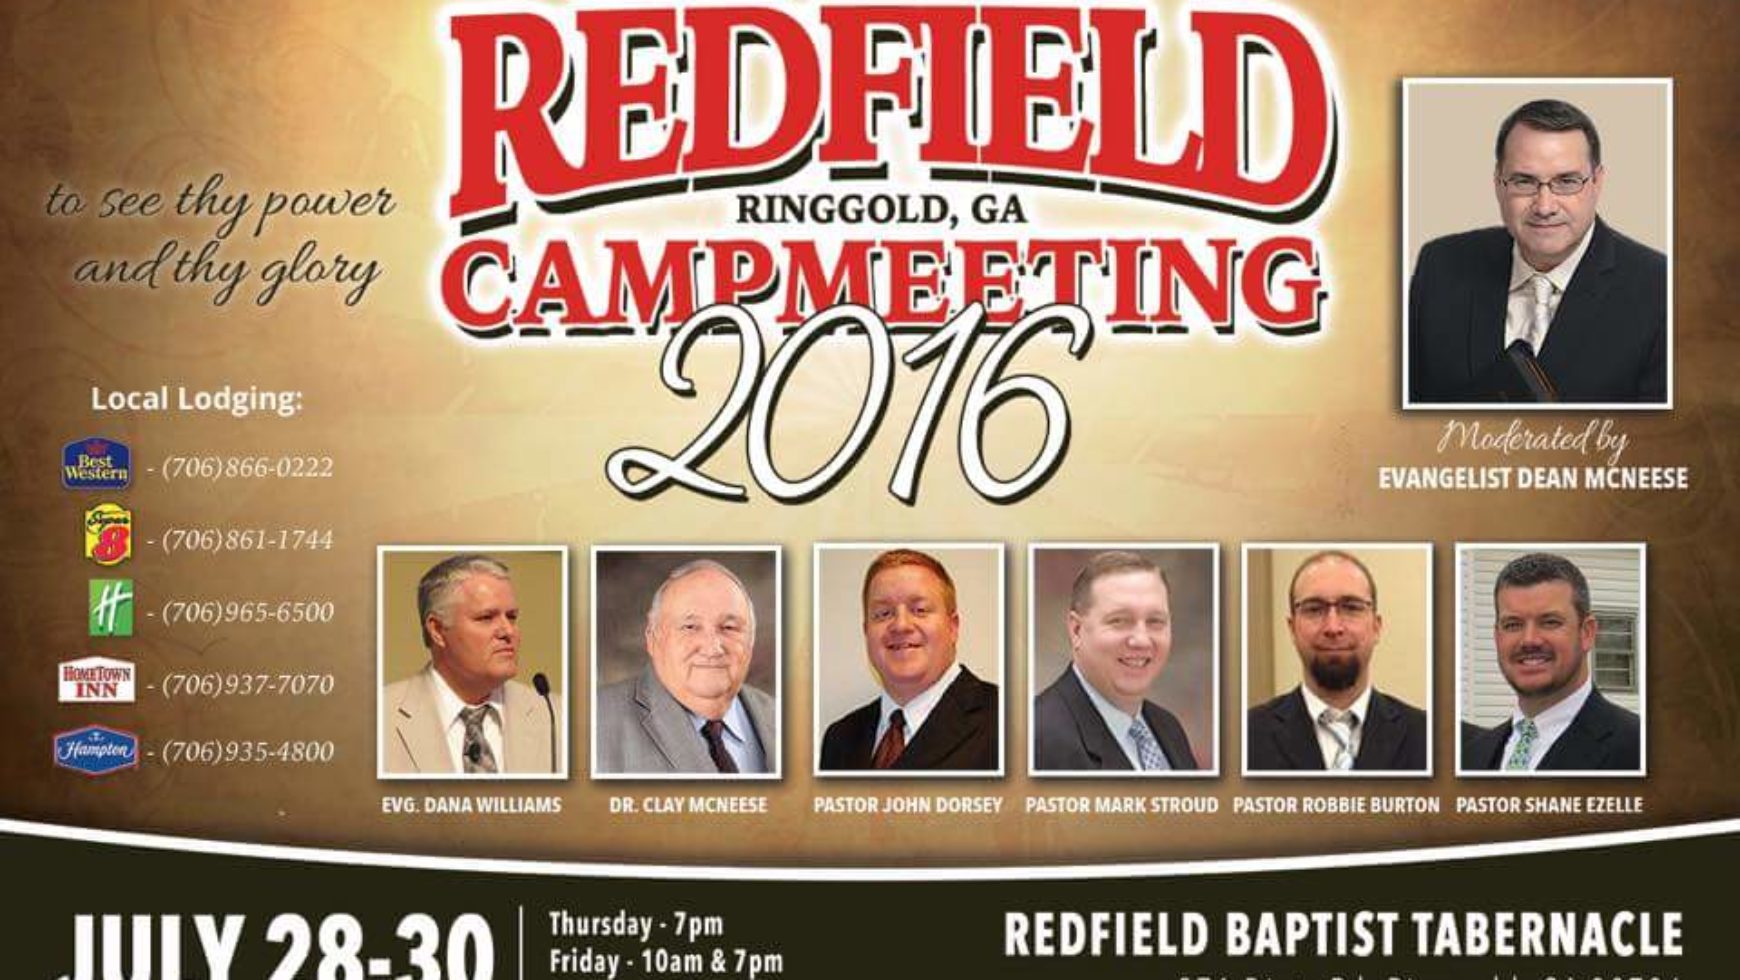 Area Meeting: Camp Meeting – Redfield Baptist Tabernacle – Ringgold, GA